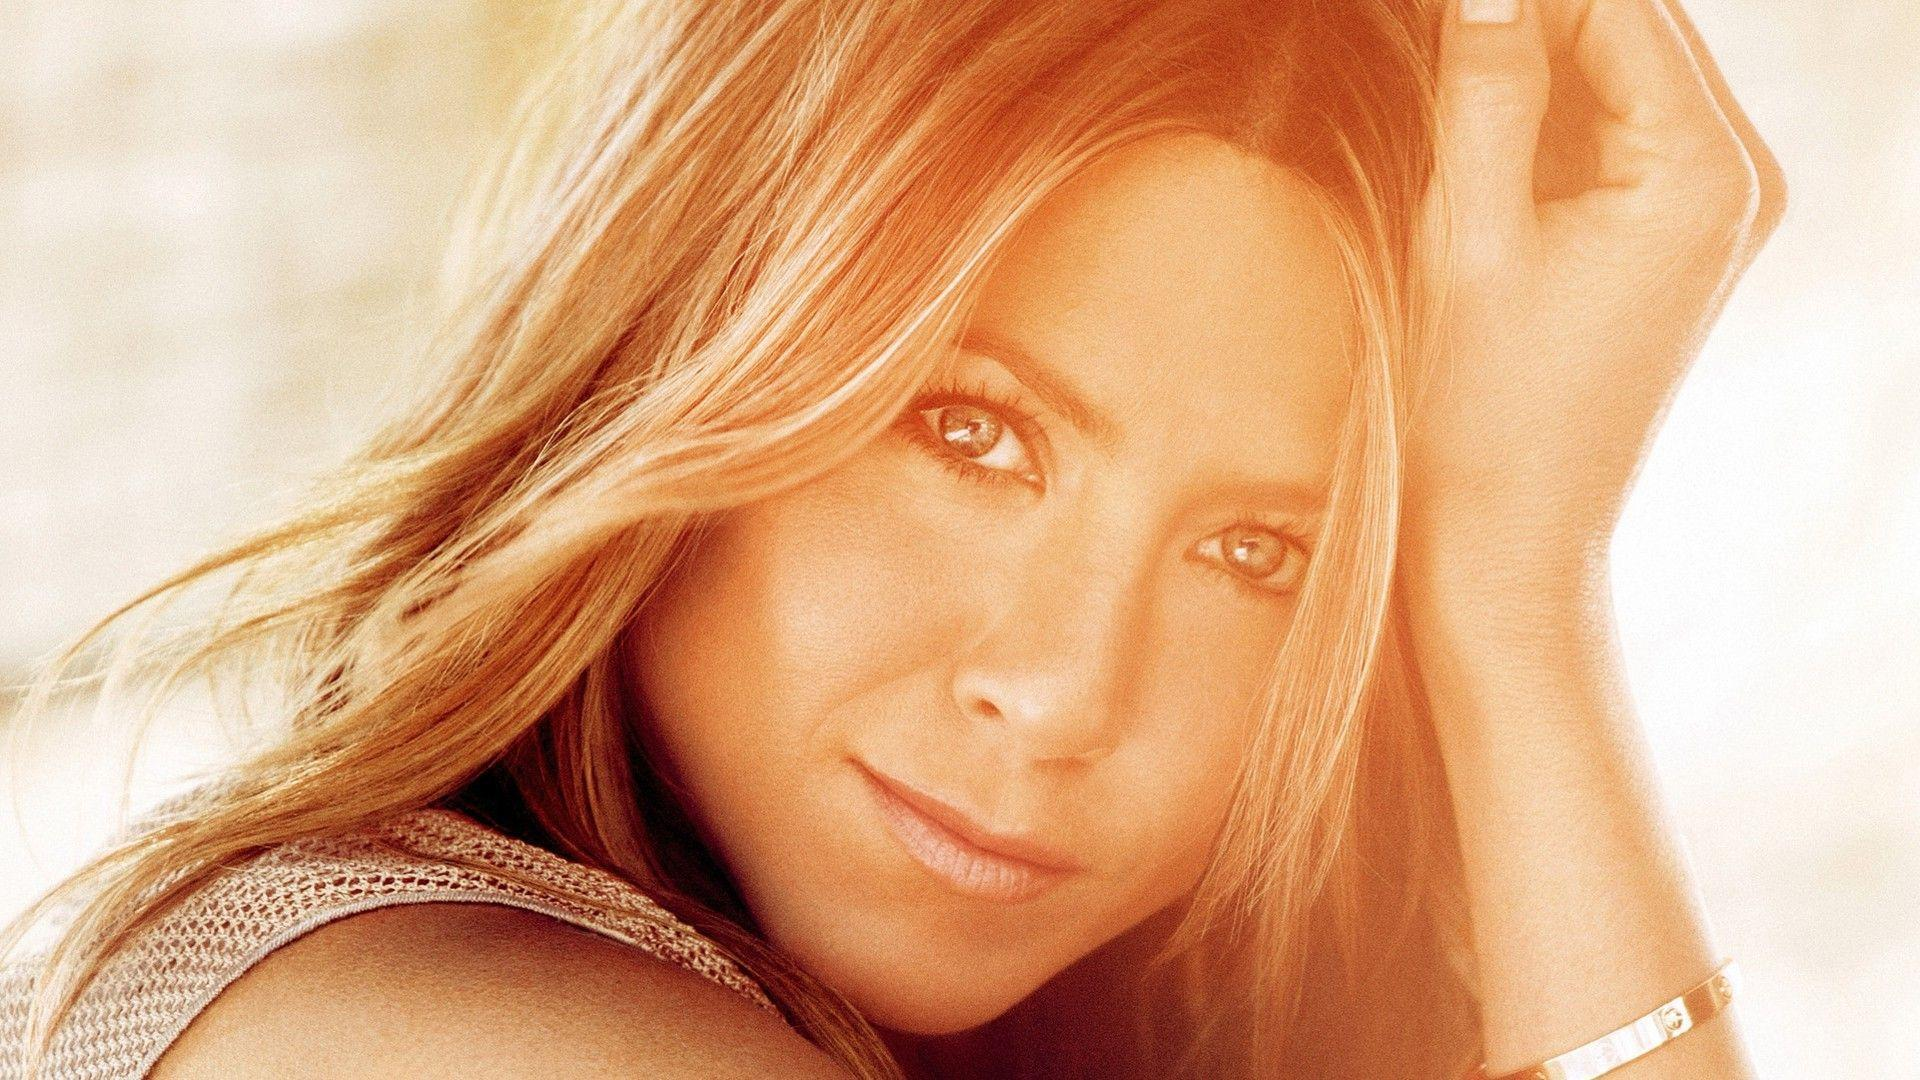 Jennifer Aniston Actress Hd Images | hdactress.info